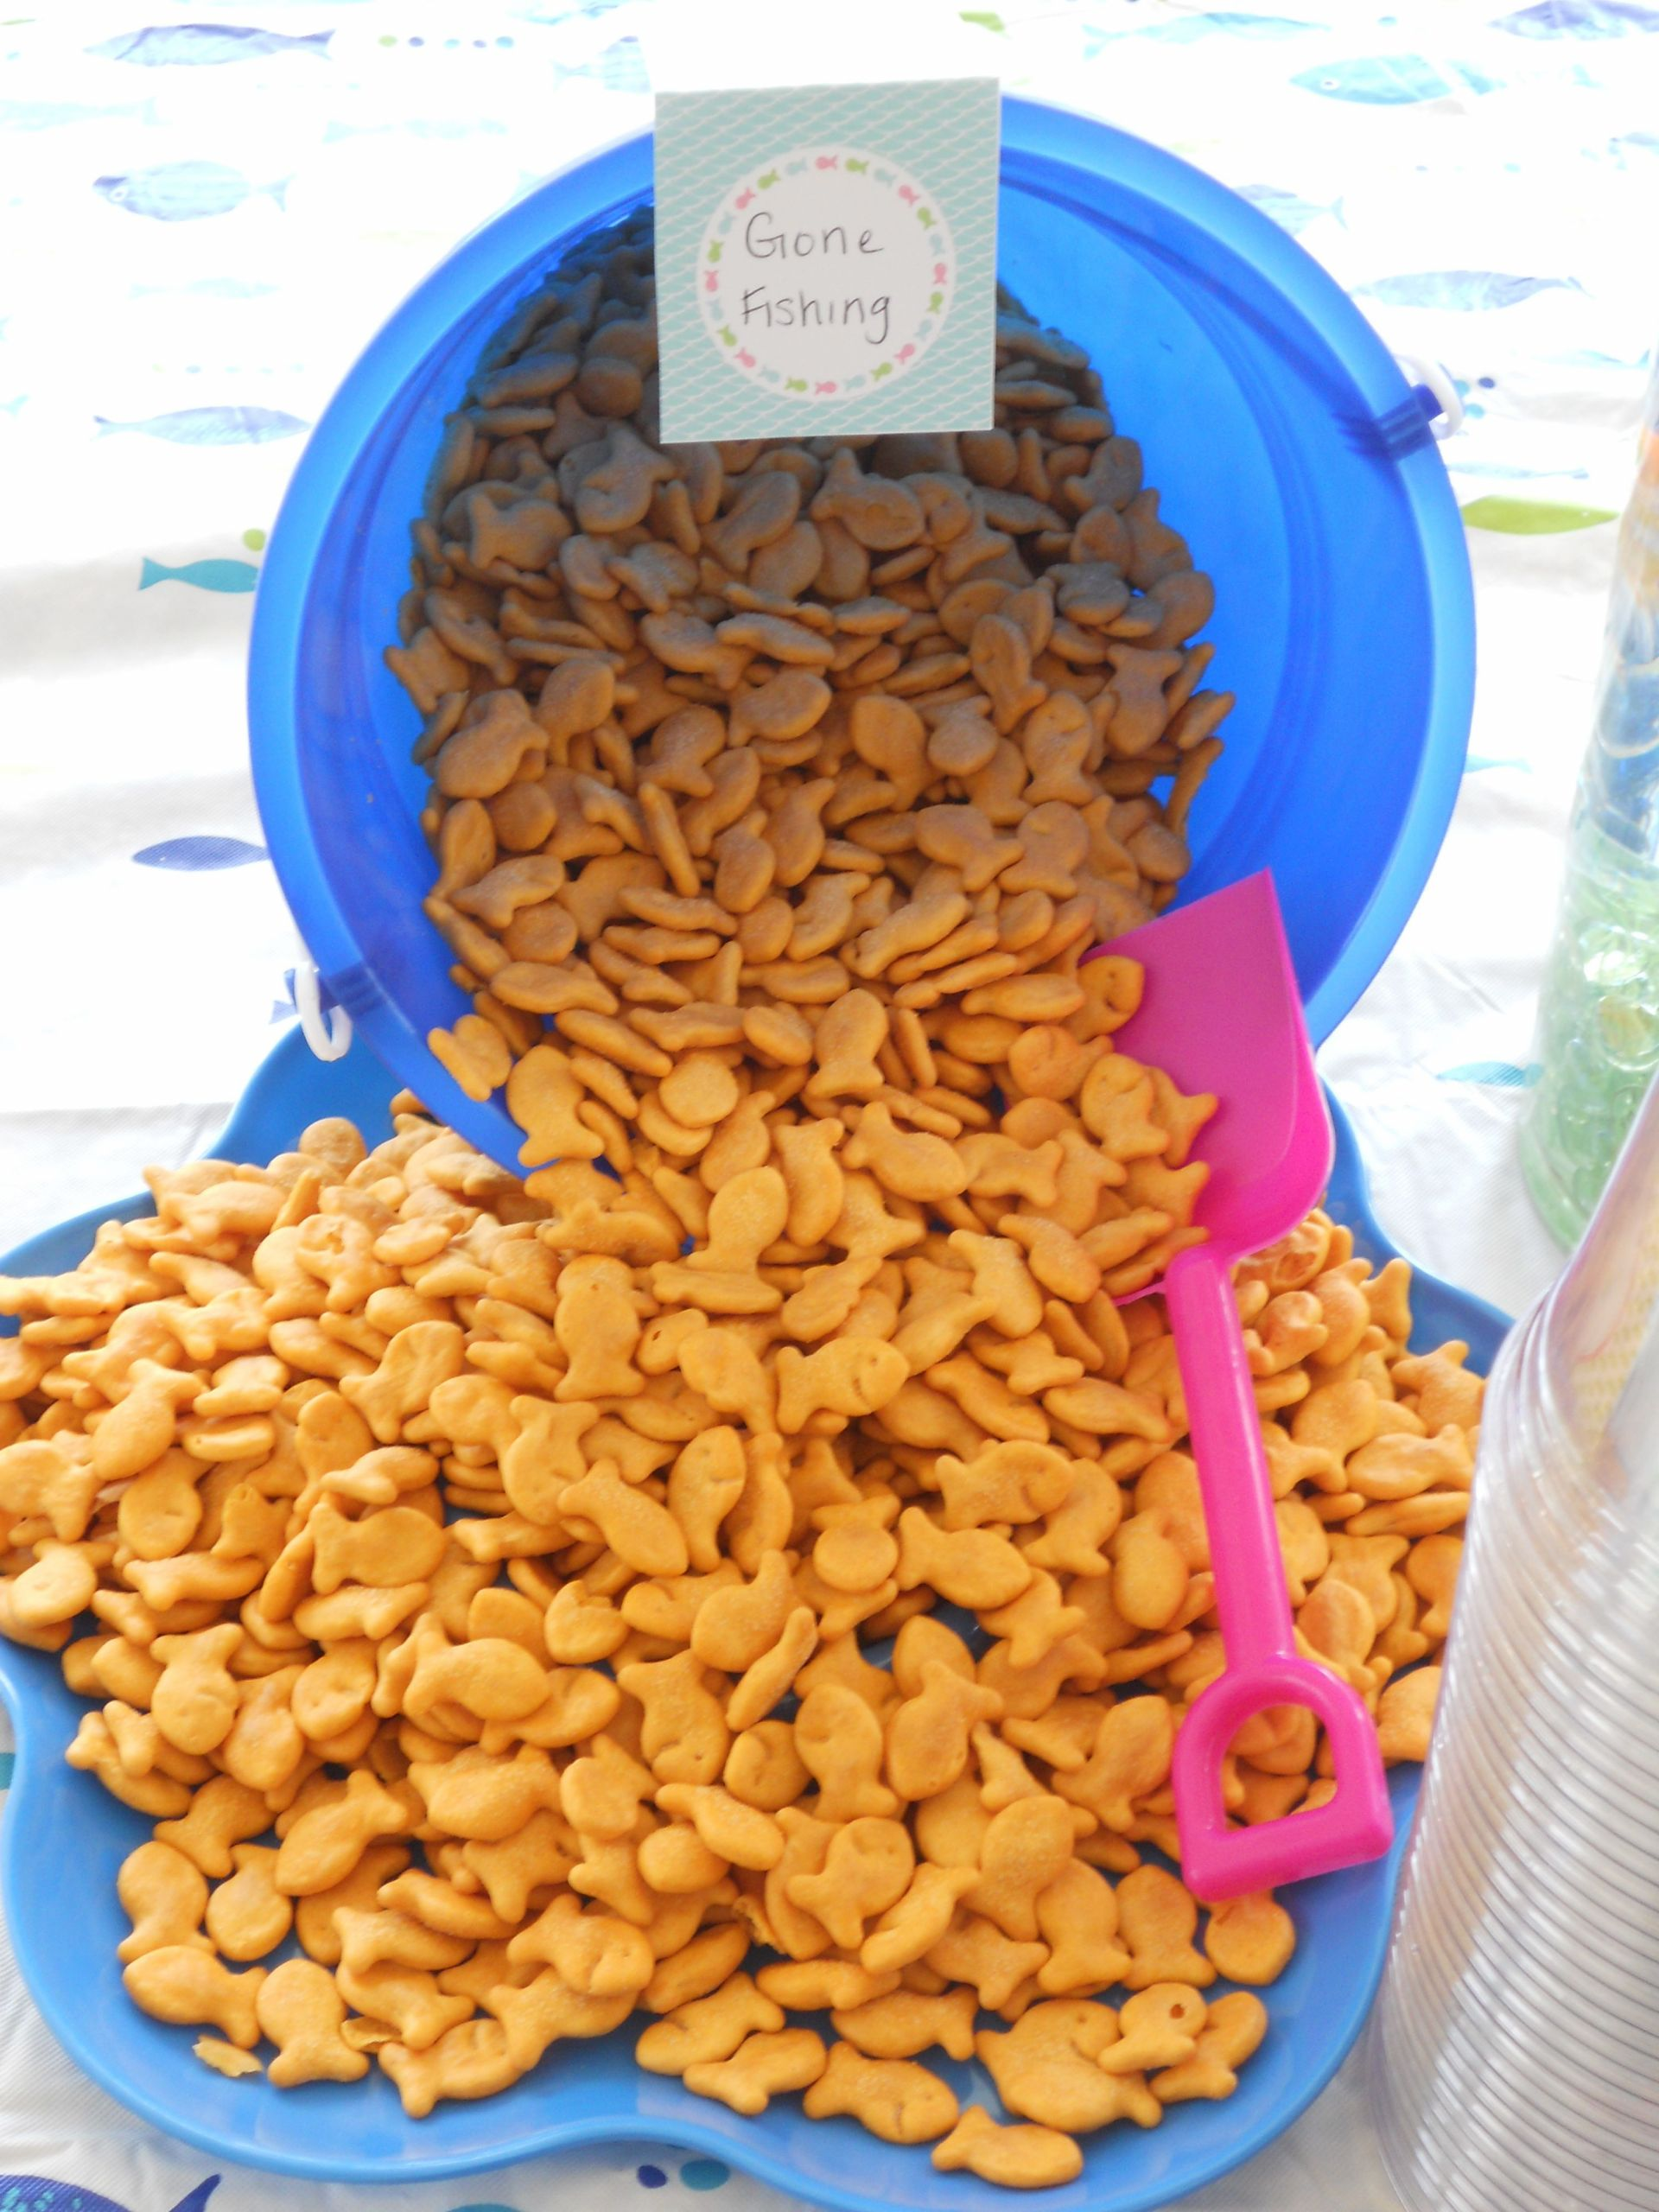 Beach Party Food Menu Ideas  Pool party decorations Use a bucket and shovel instead of